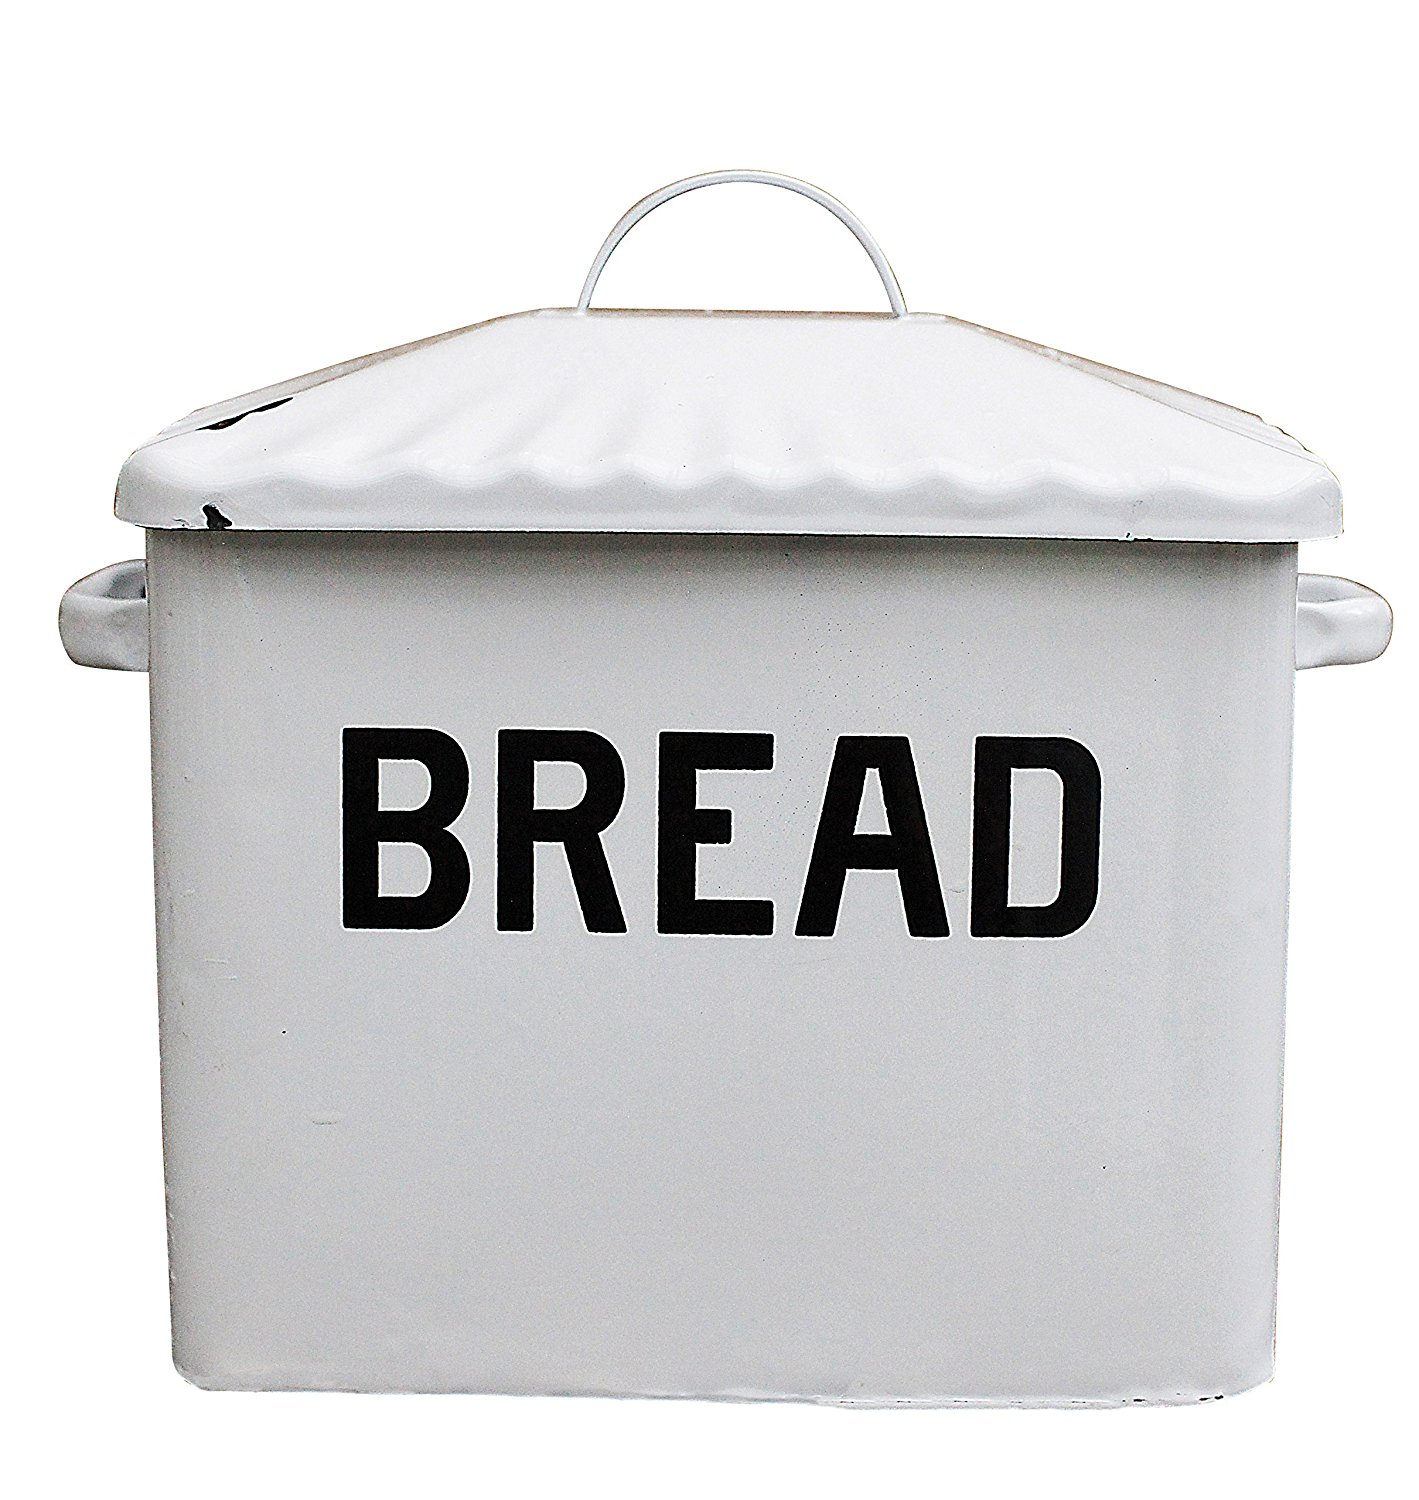 Distressed White BREAD Box with Lid